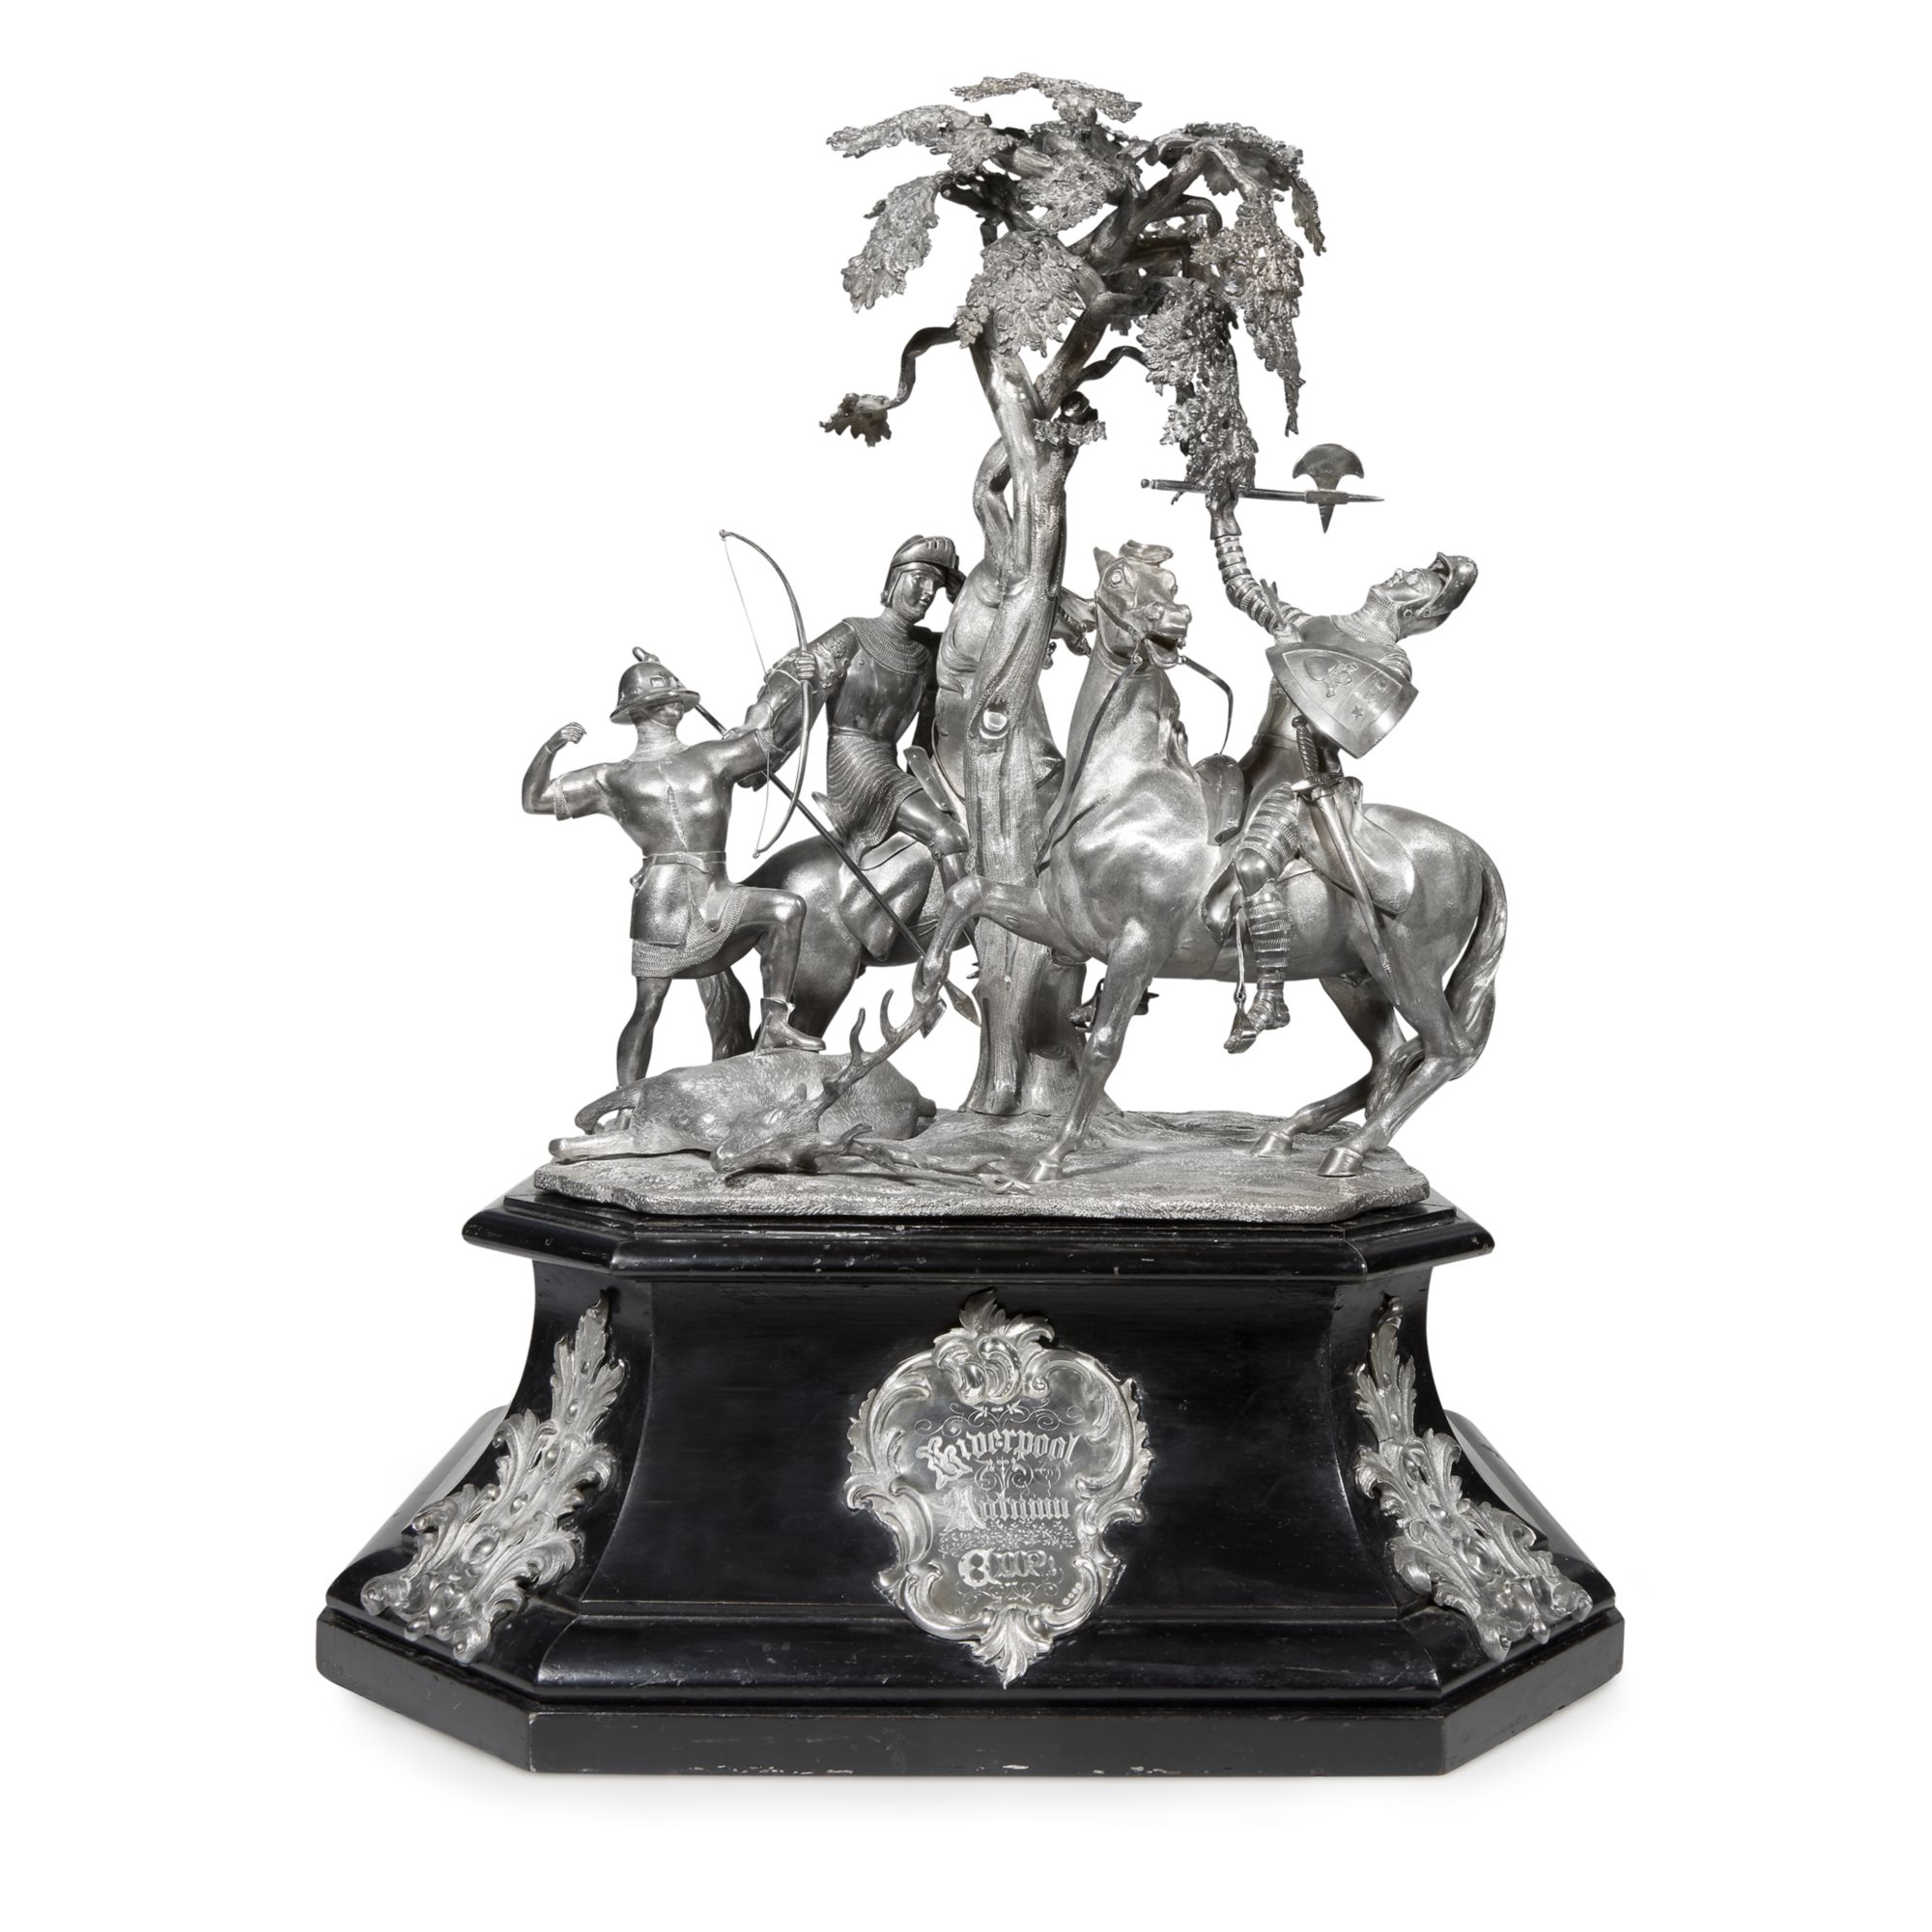 Lot 39  |  Victorian sterling silver figural equestrian trophy, 'Liverpool Autumn Cup', Charles Reily & George Storer, London, 1847, $15,000-25,000